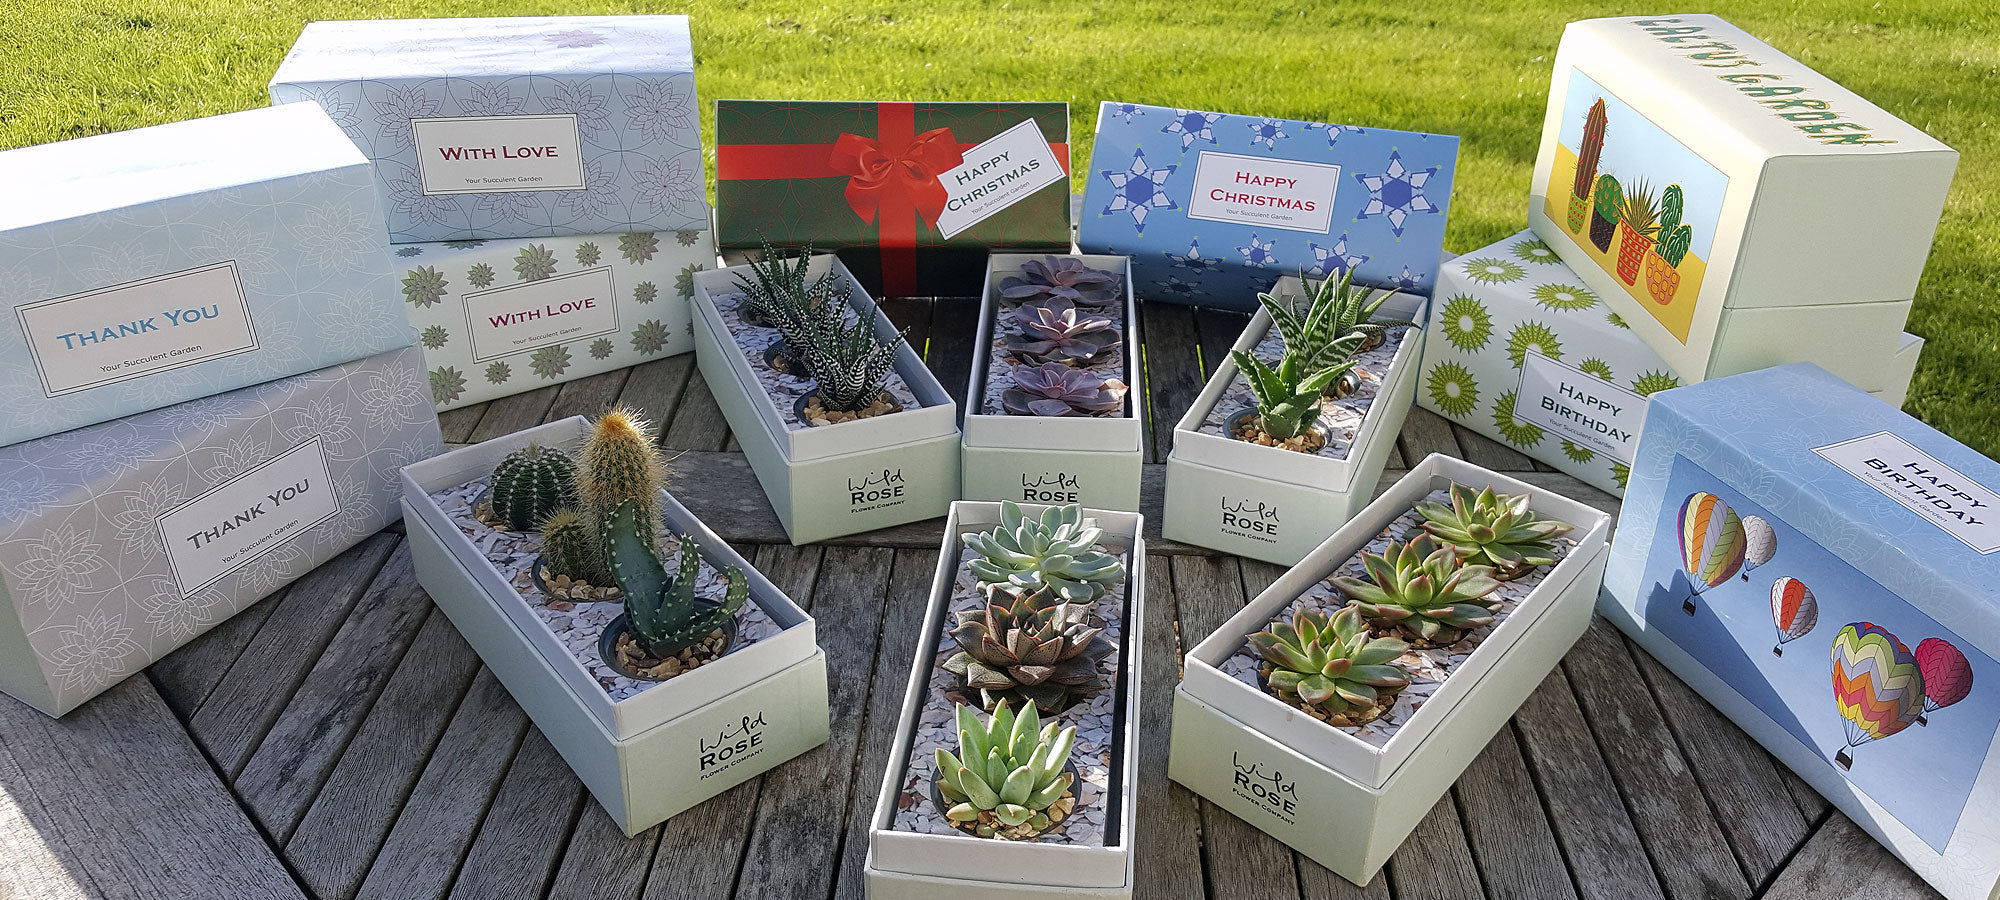 Succulents Gift Box Planters